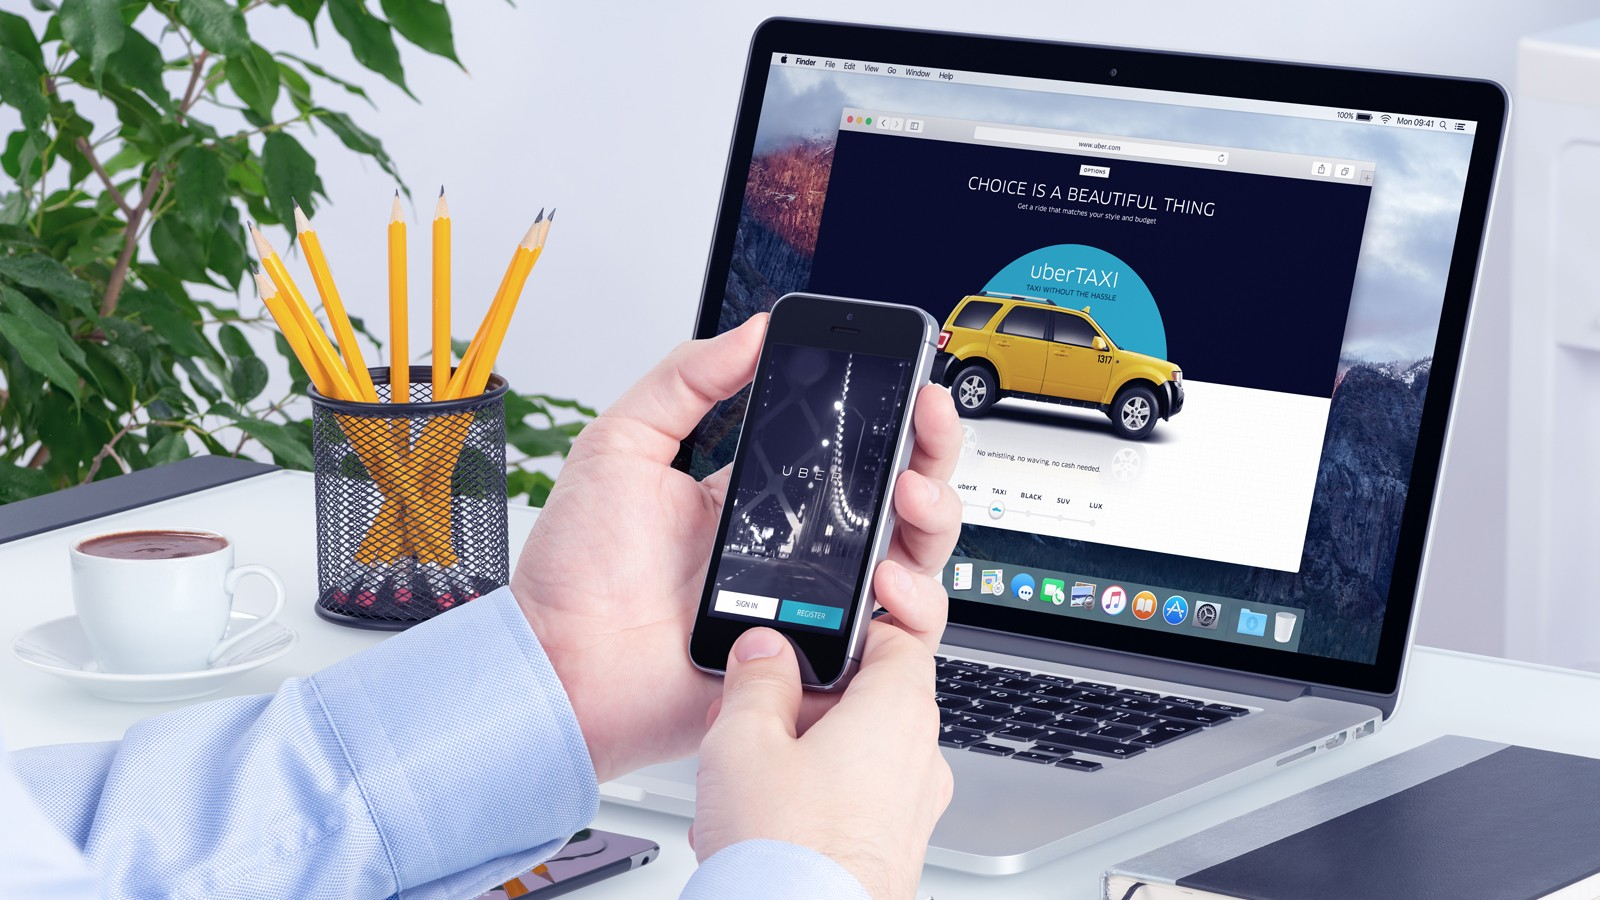 Uber app on the iPhone display in man hands and Uber website on